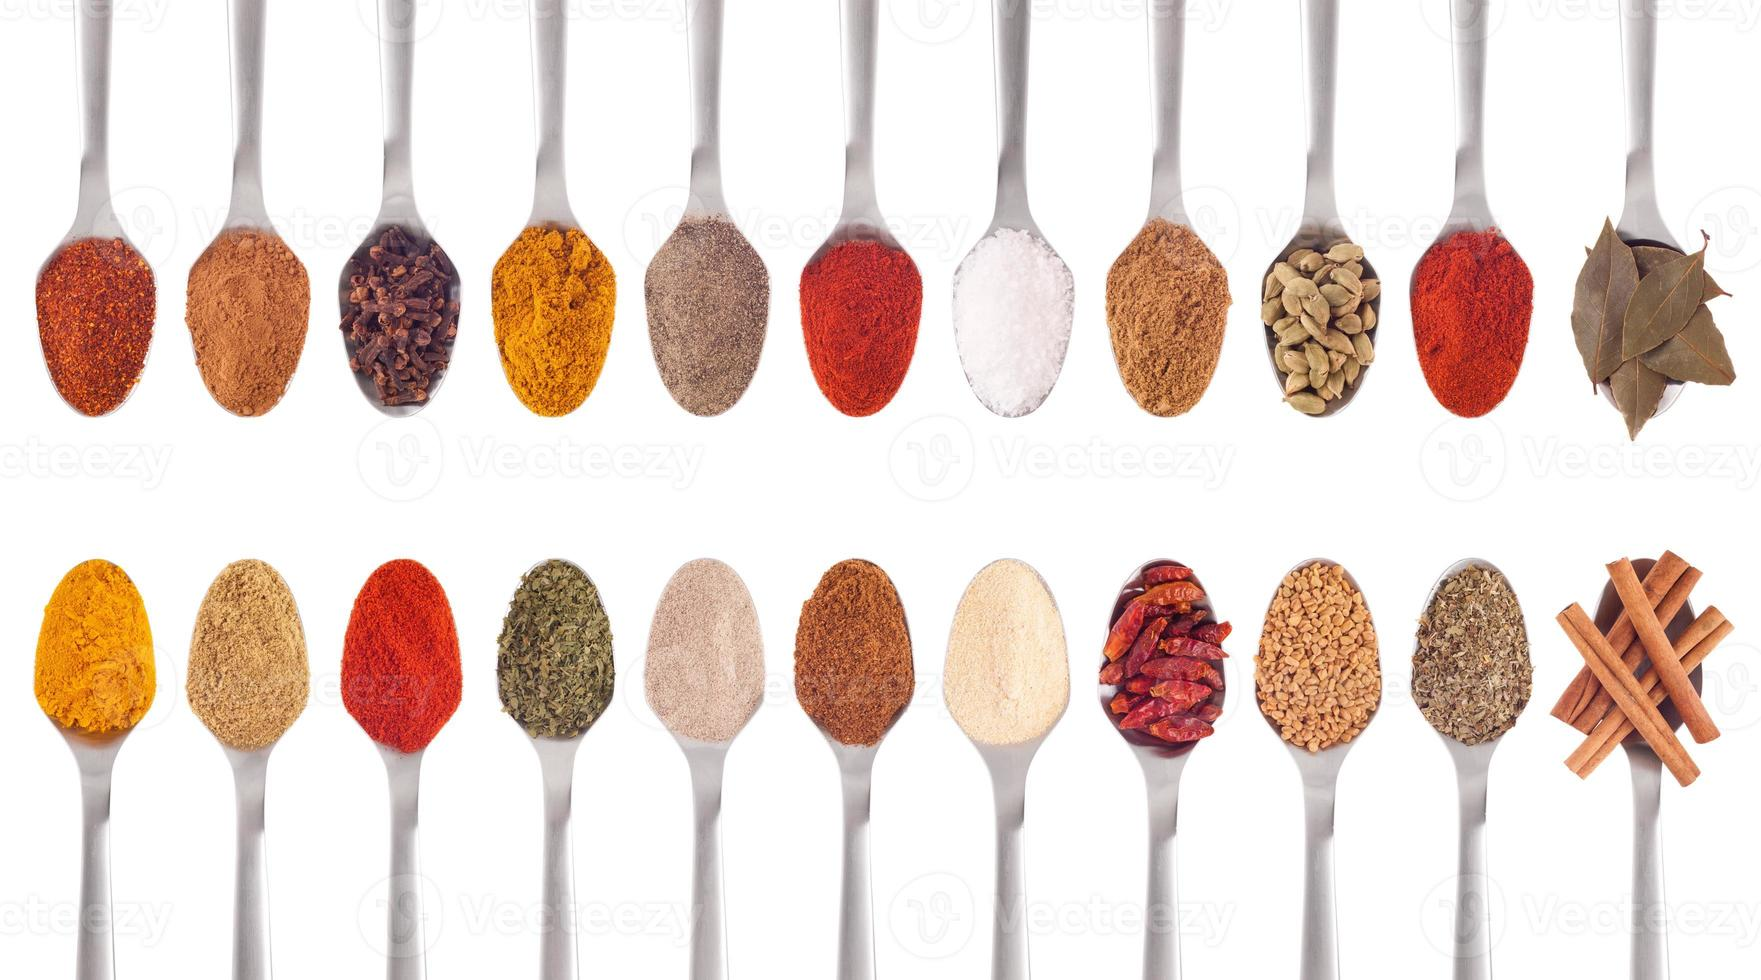 Spices collection on spoons photo